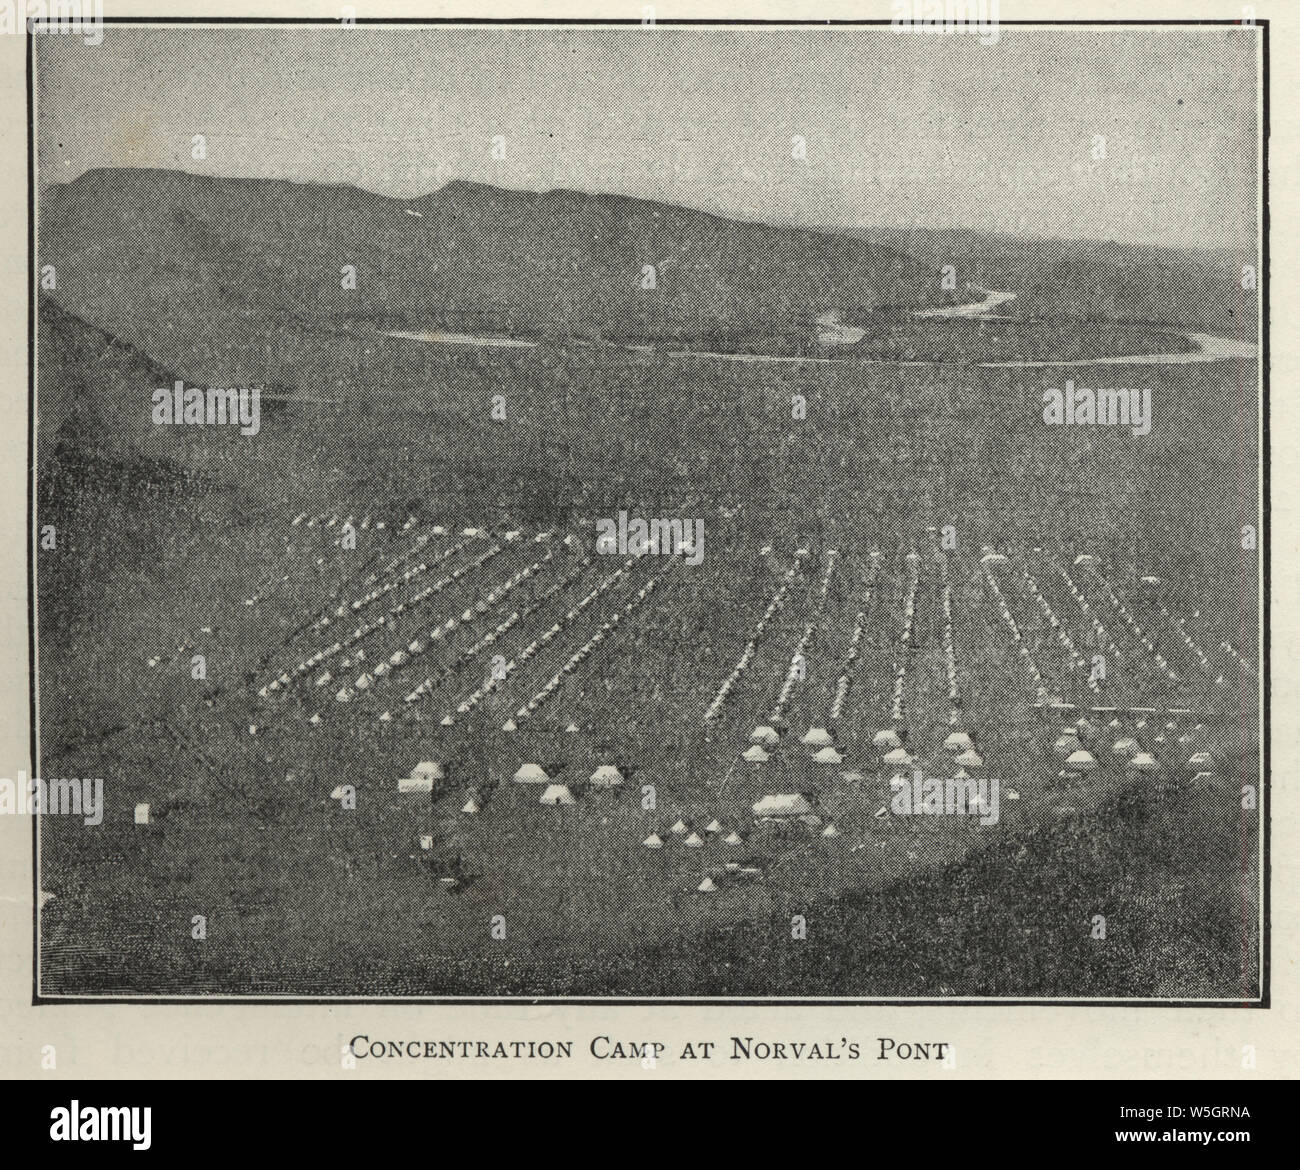 Second Boer War, Concentration camp at Norval's Pont (Norvalspont) Northern Cape, South Africa Stock Photo